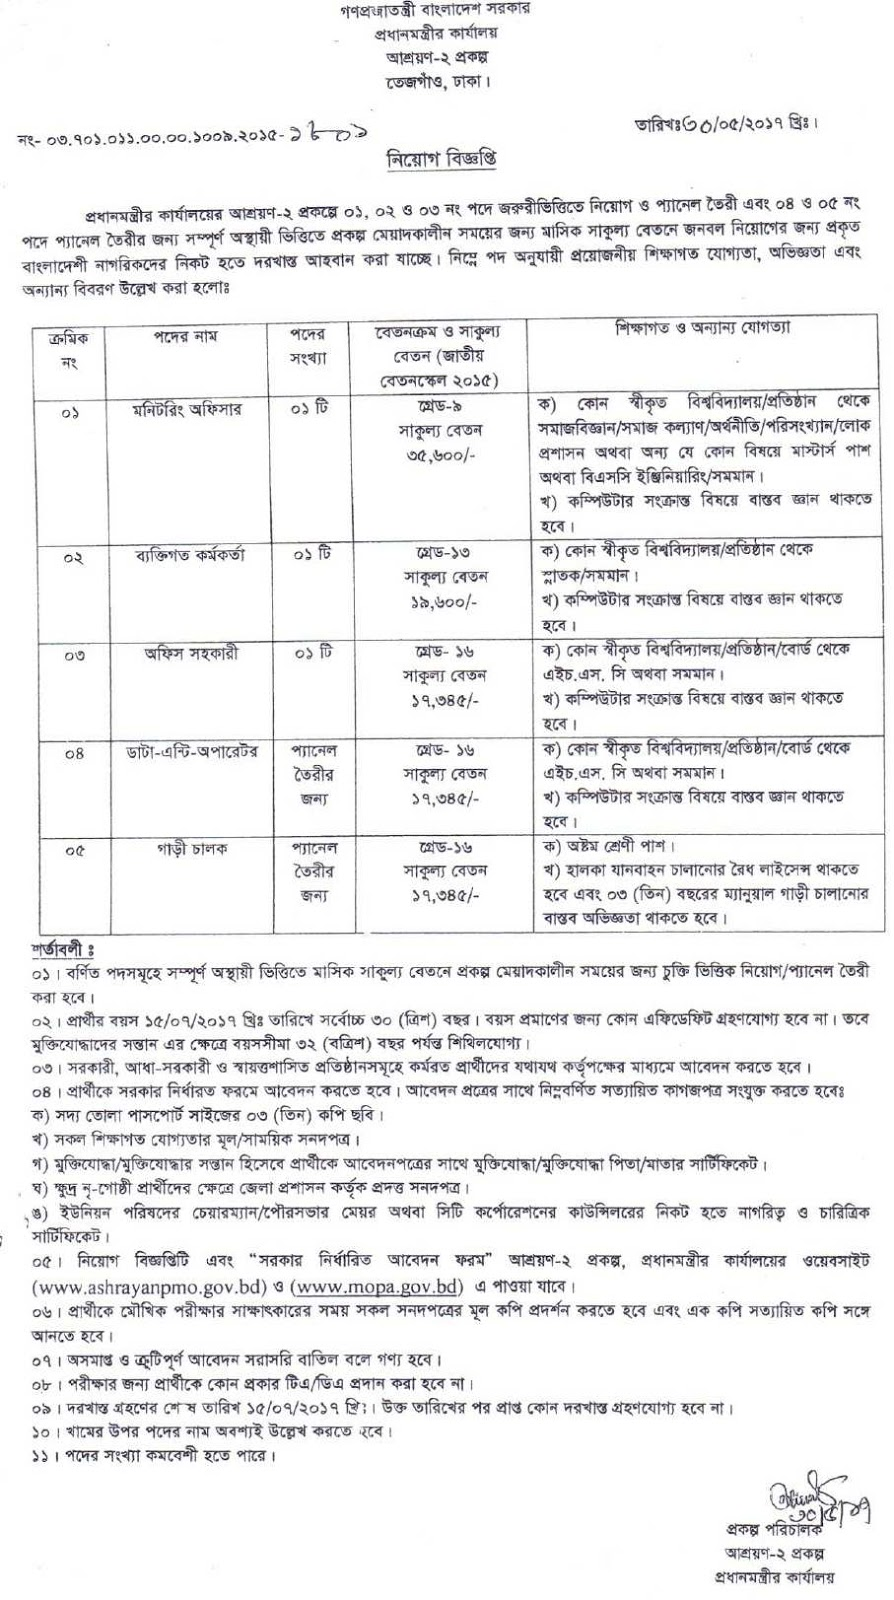 Prime Ministers Office Job Circular 2017 BD July